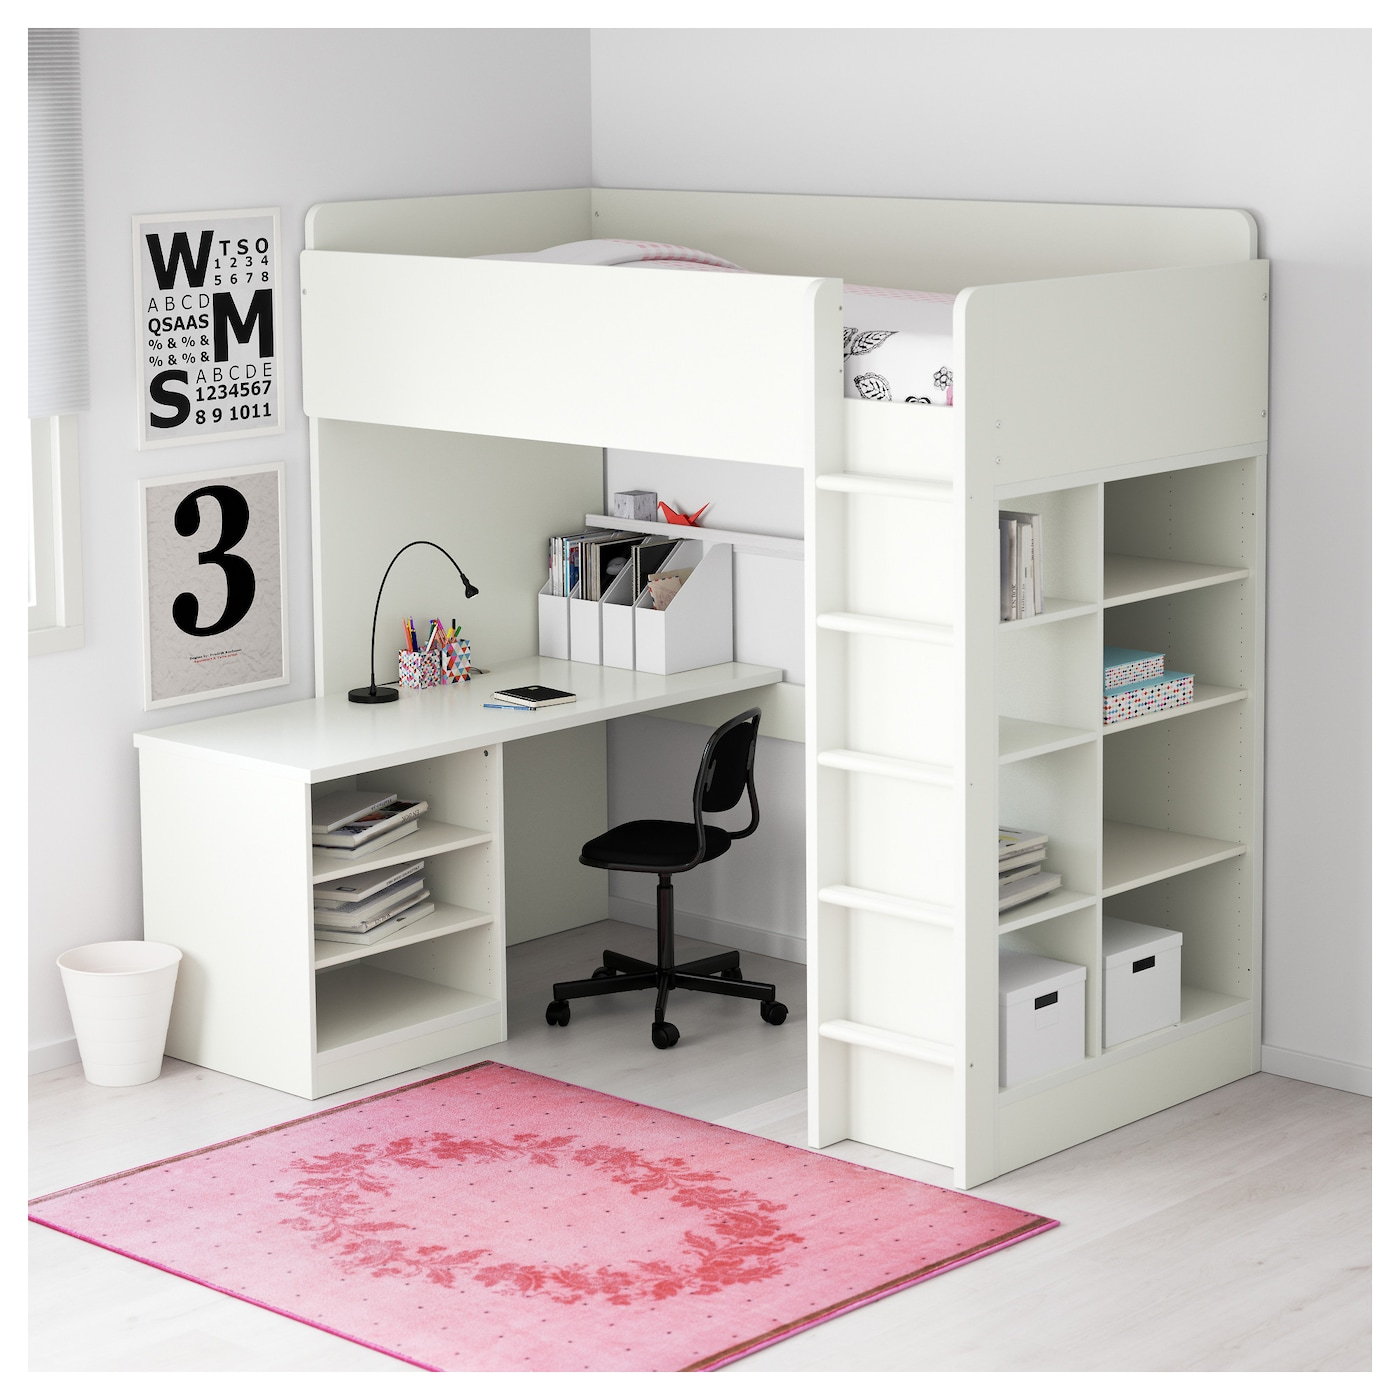 Stuva loft bed combo w 2 shlvs 3 shlvs white 207x99x193 cm for Loft furniture